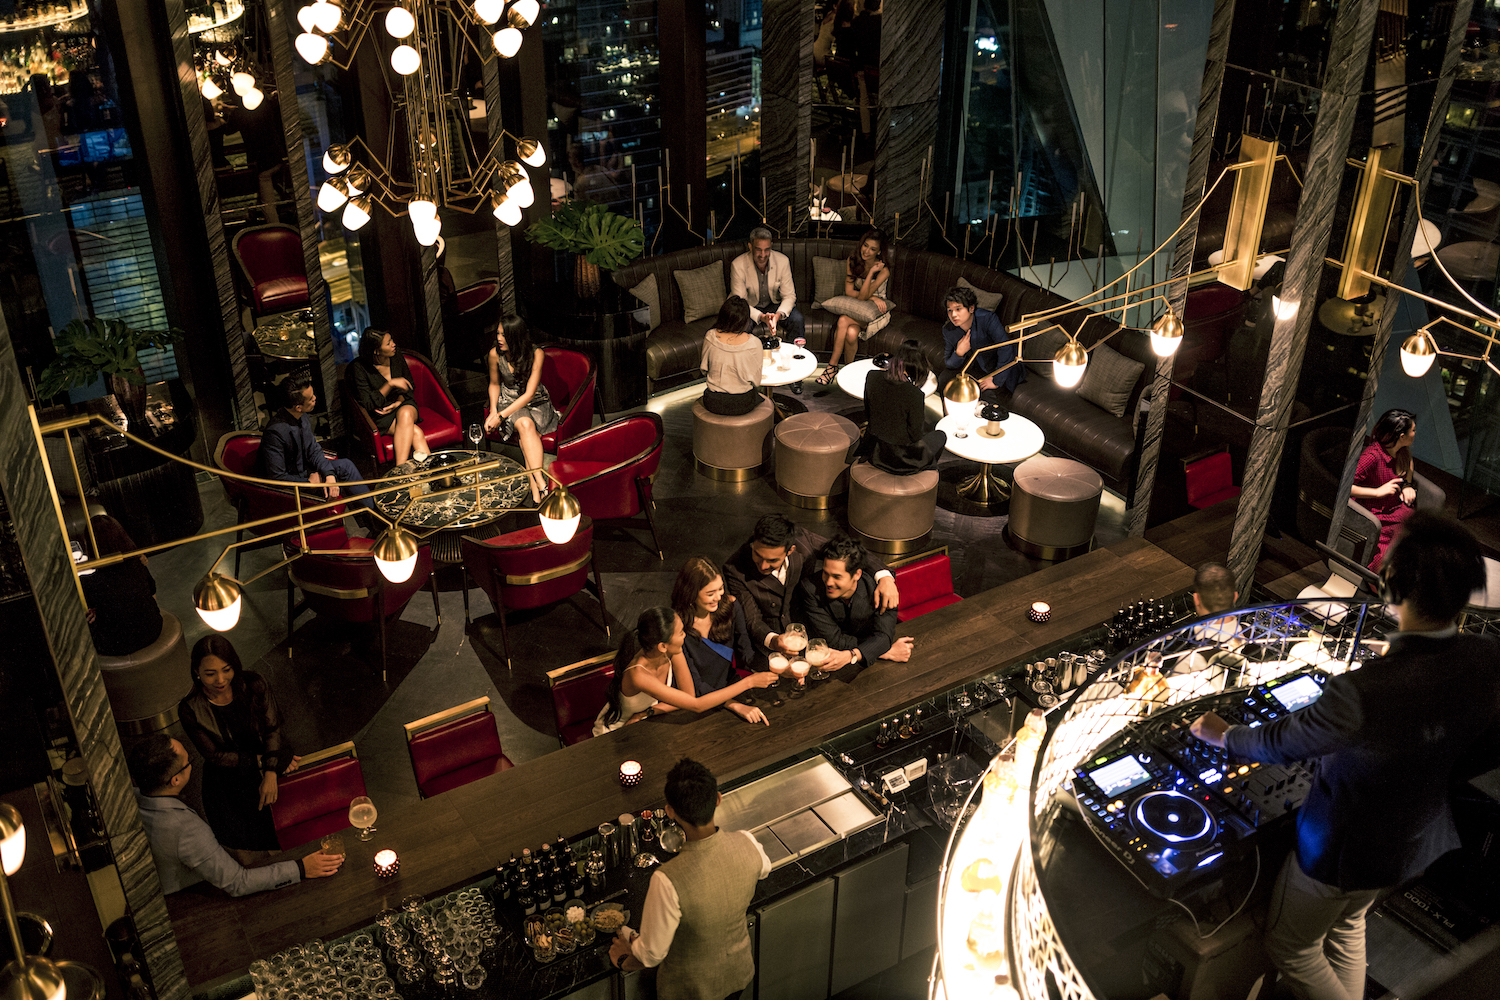 events activities bangkok penthouse bar maggie choo